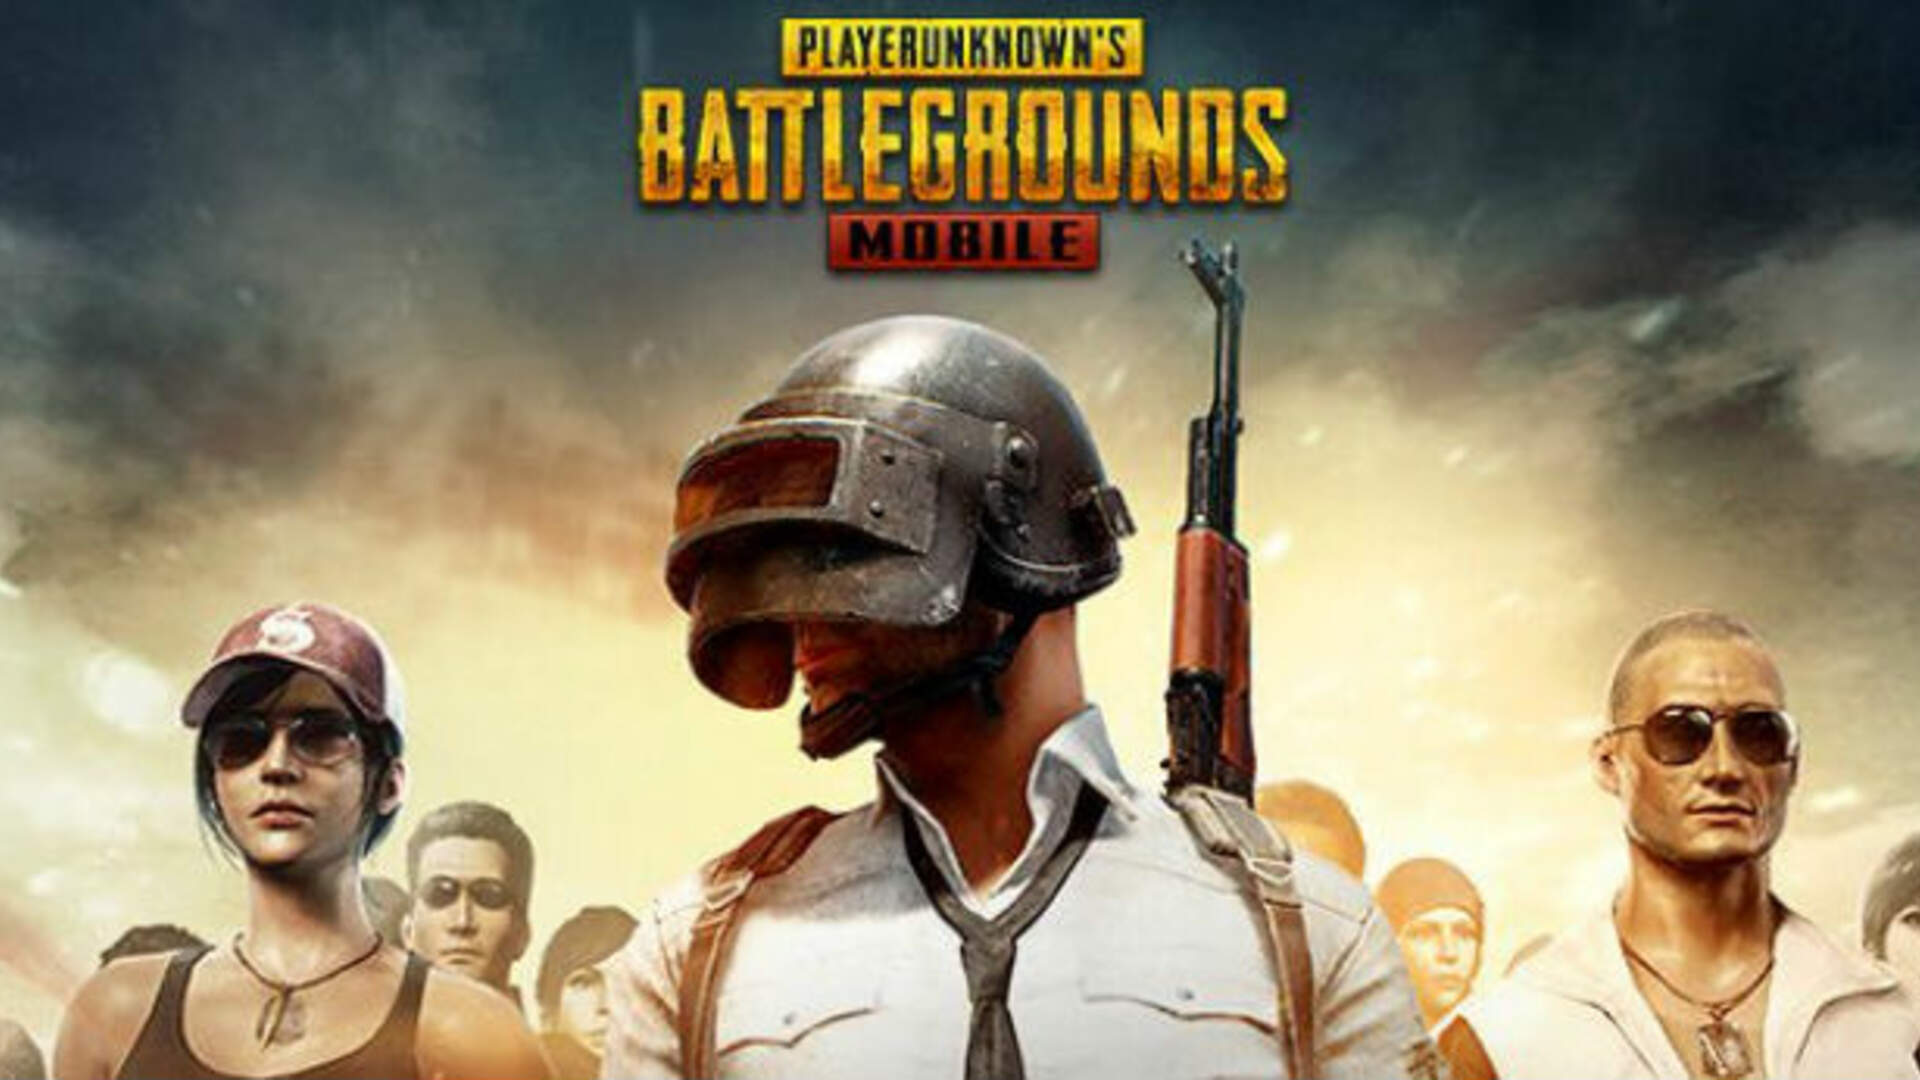 PUBG Mobile is the World's Most Downloaded Mobile Game but it's Not Making Money